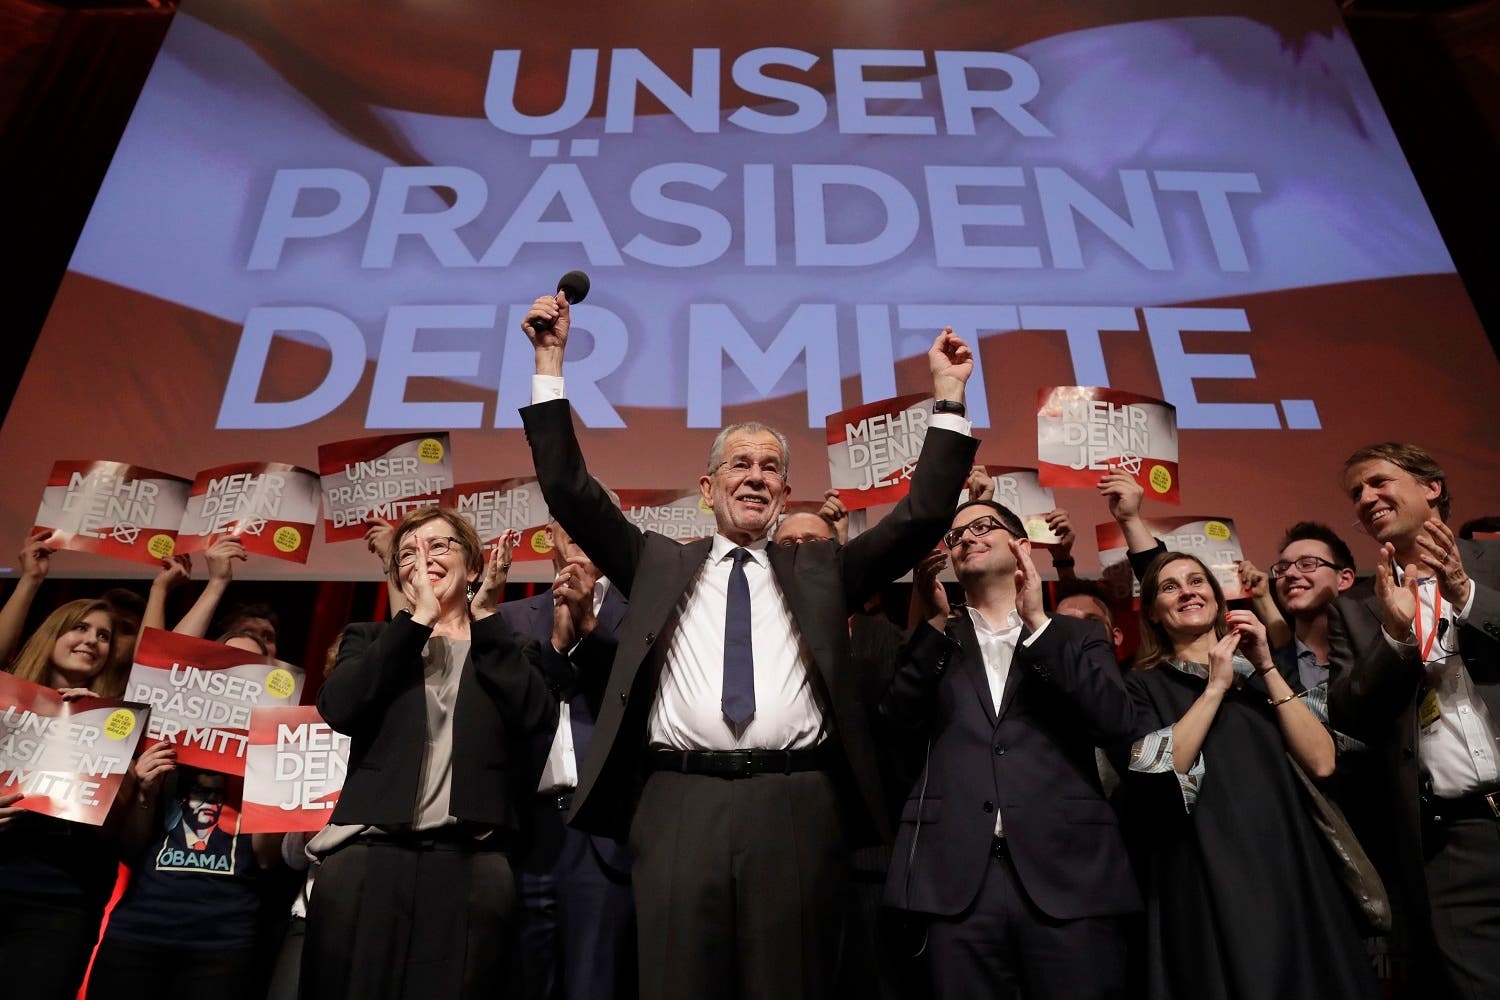 Presidential candidate Alexander Van der Bellen, a former leading member of the Greens Party, celebrates on the podium at a party of his supporters in Austria's capital Vienna Sunday, Dec. 4, 2016, after being declared the winner in the first round (Photo: AP/Matthias Schrader)